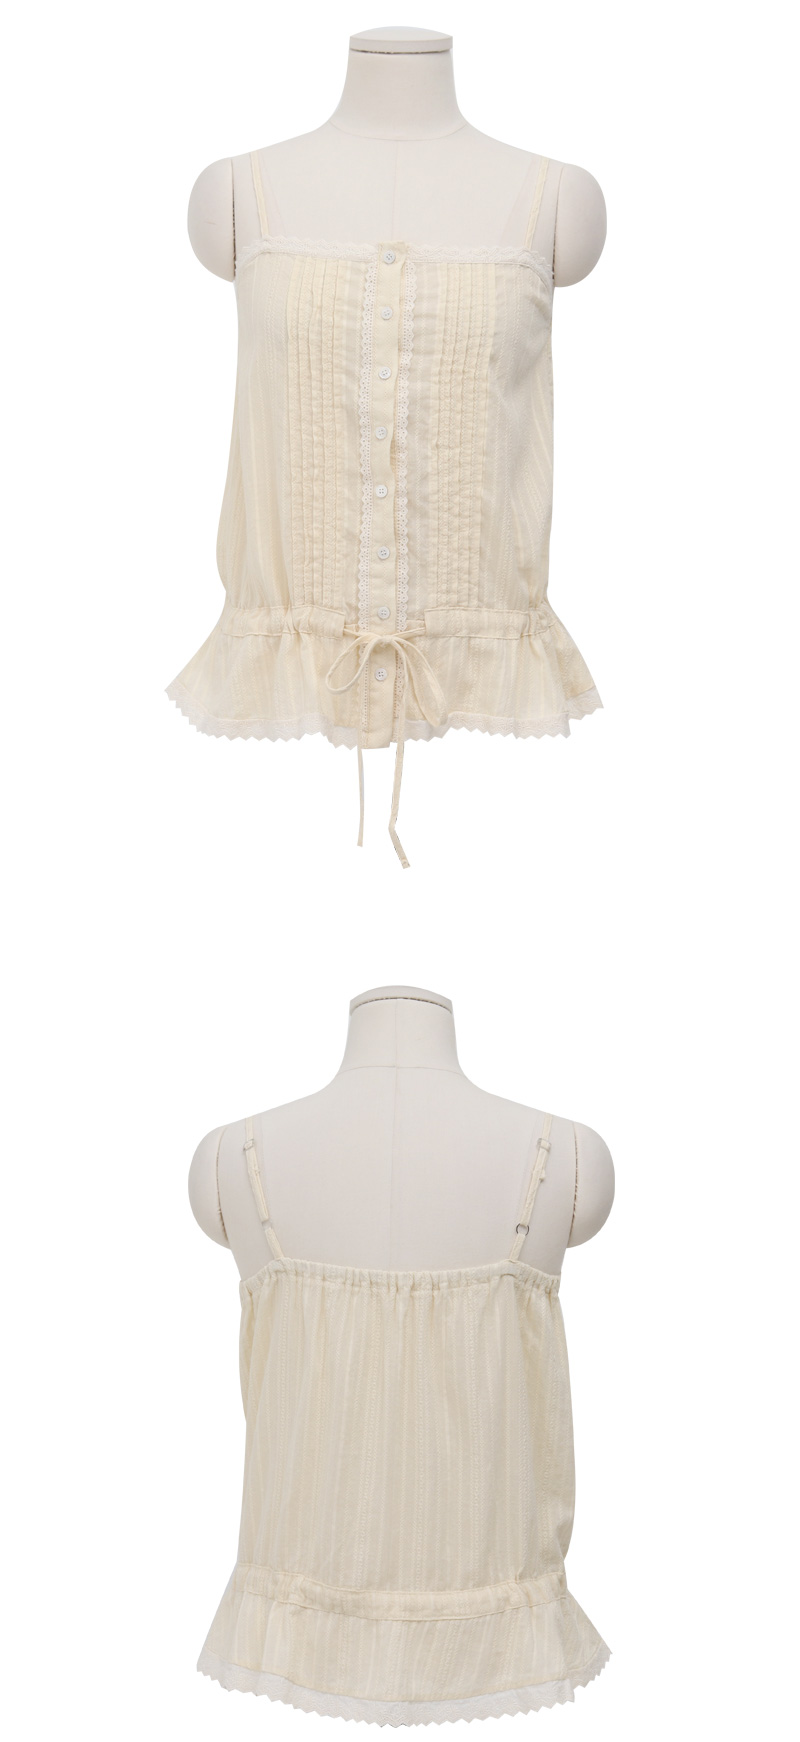 Dolls lace sleeveless top_Y